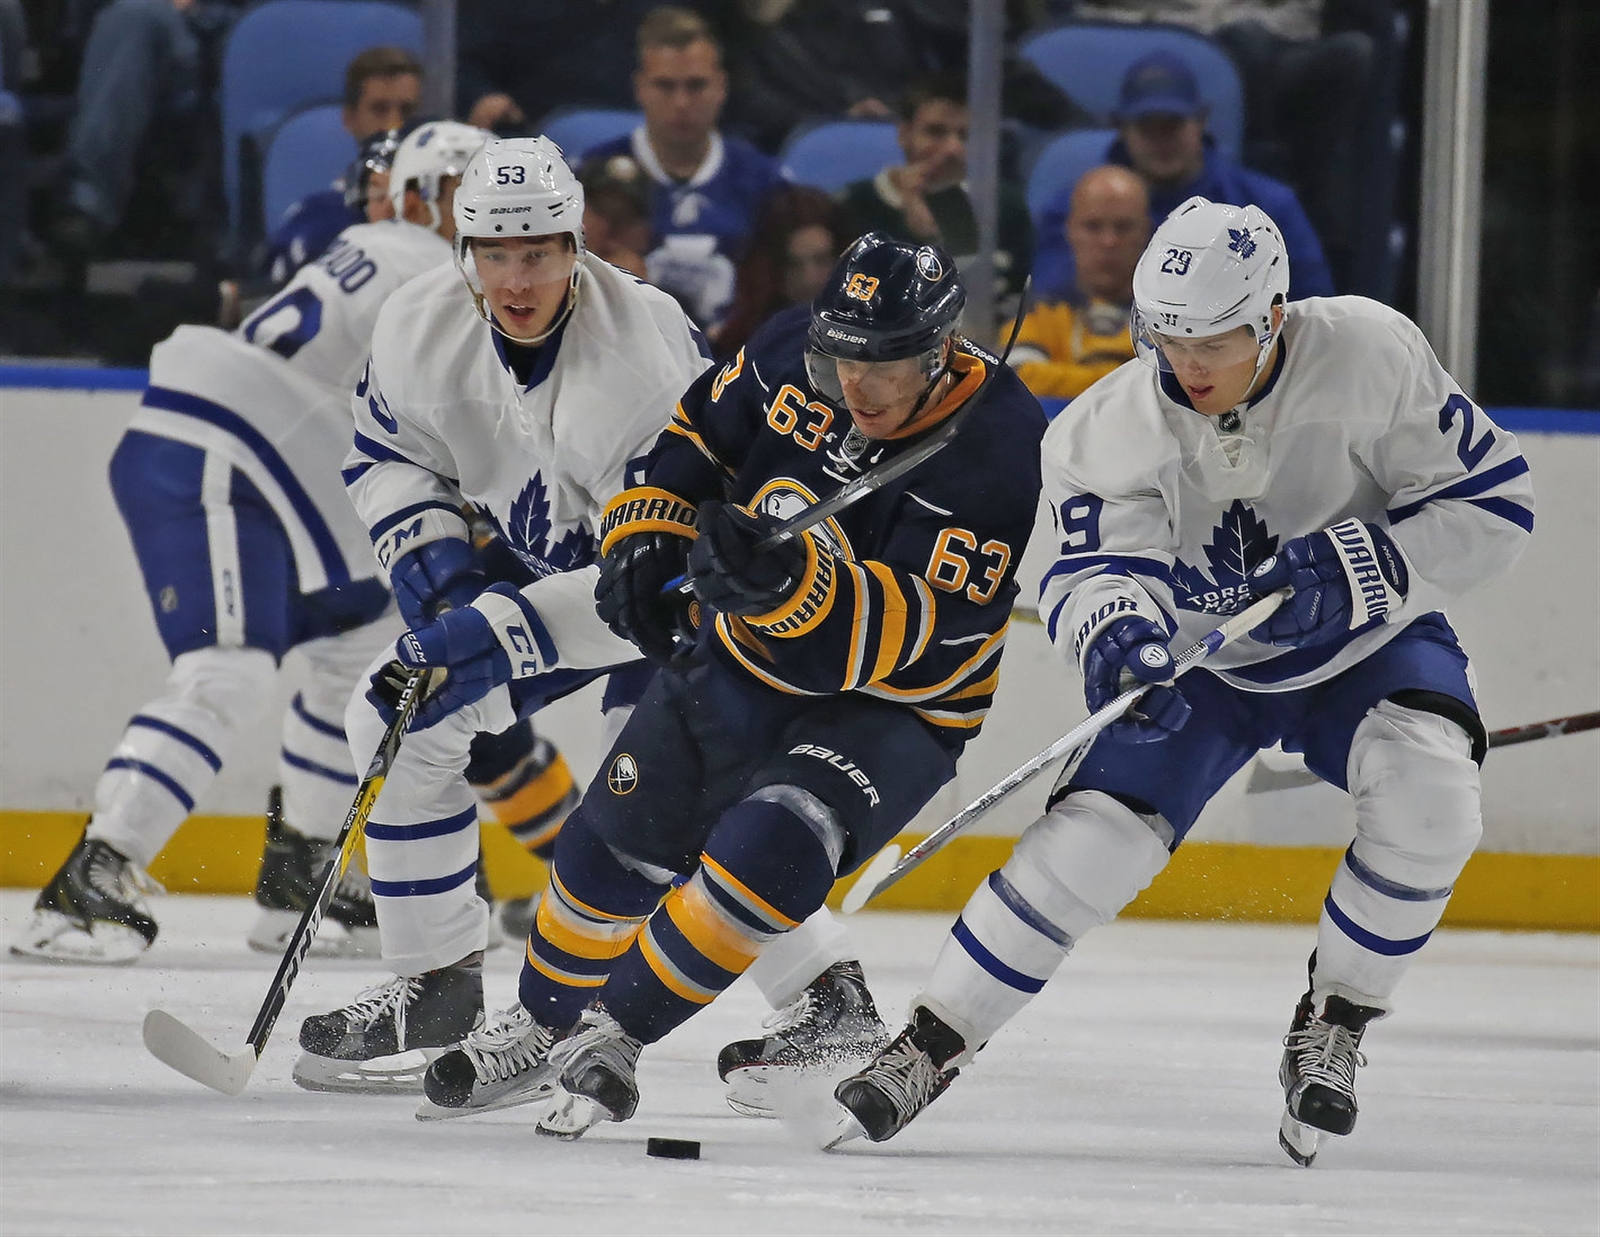 Despite suffering two concussions last season, Tyler Ennis is aggressively weaving through traffic. (Photo by Robert Kirkham/Buffalo News)